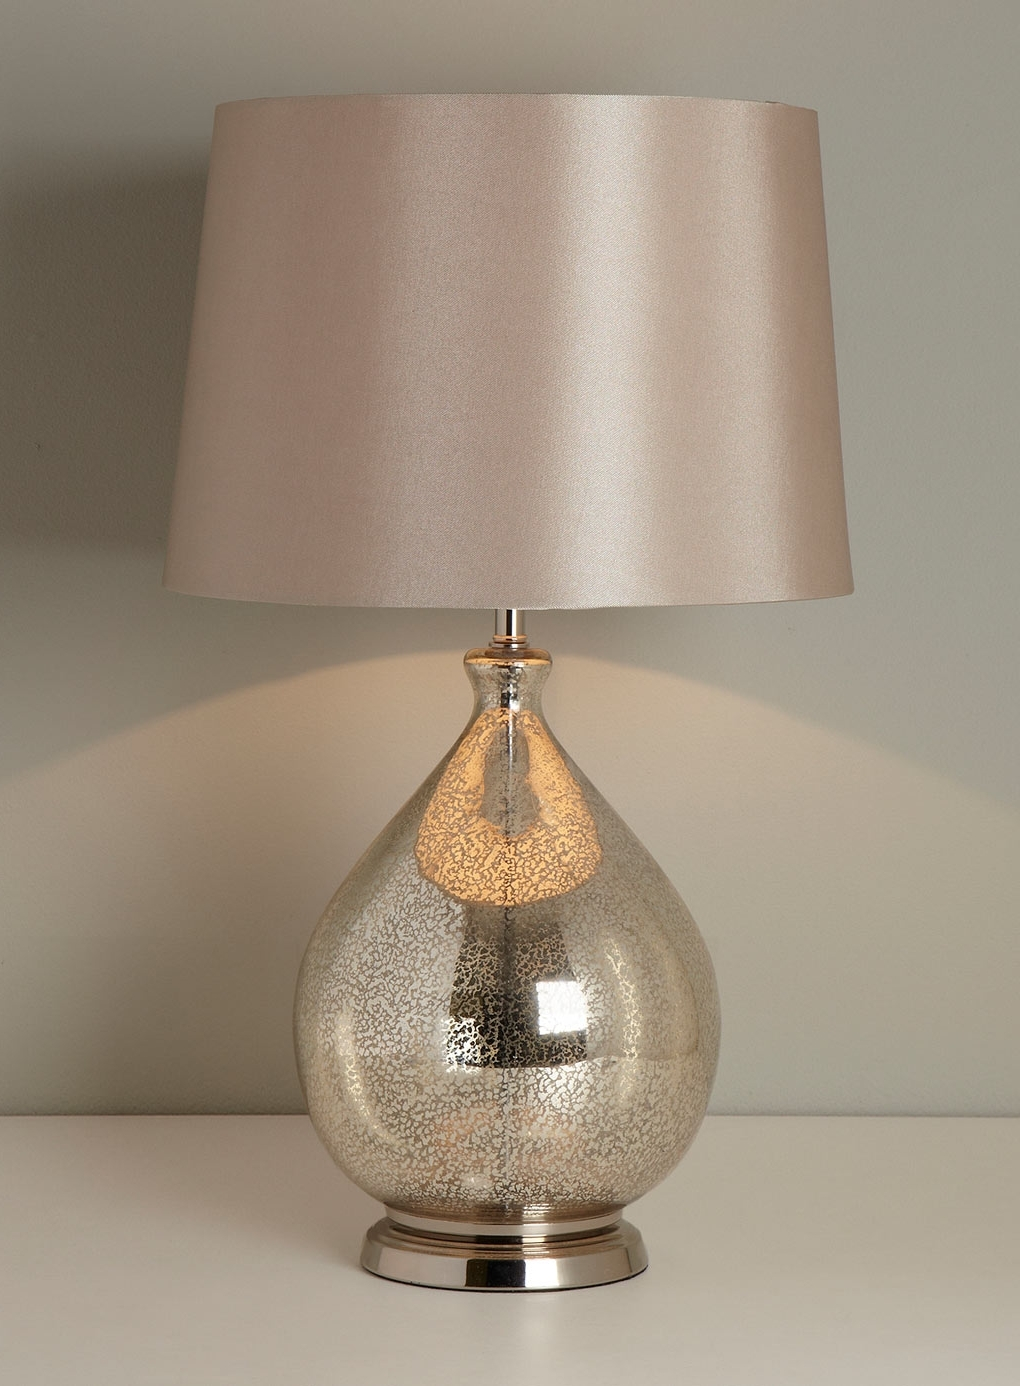 Glass Table Lamps For Living Room — Table Design : Dazzling Glass Throughout Well Known Pink Table Lamps For Living Room (View 6 of 15)